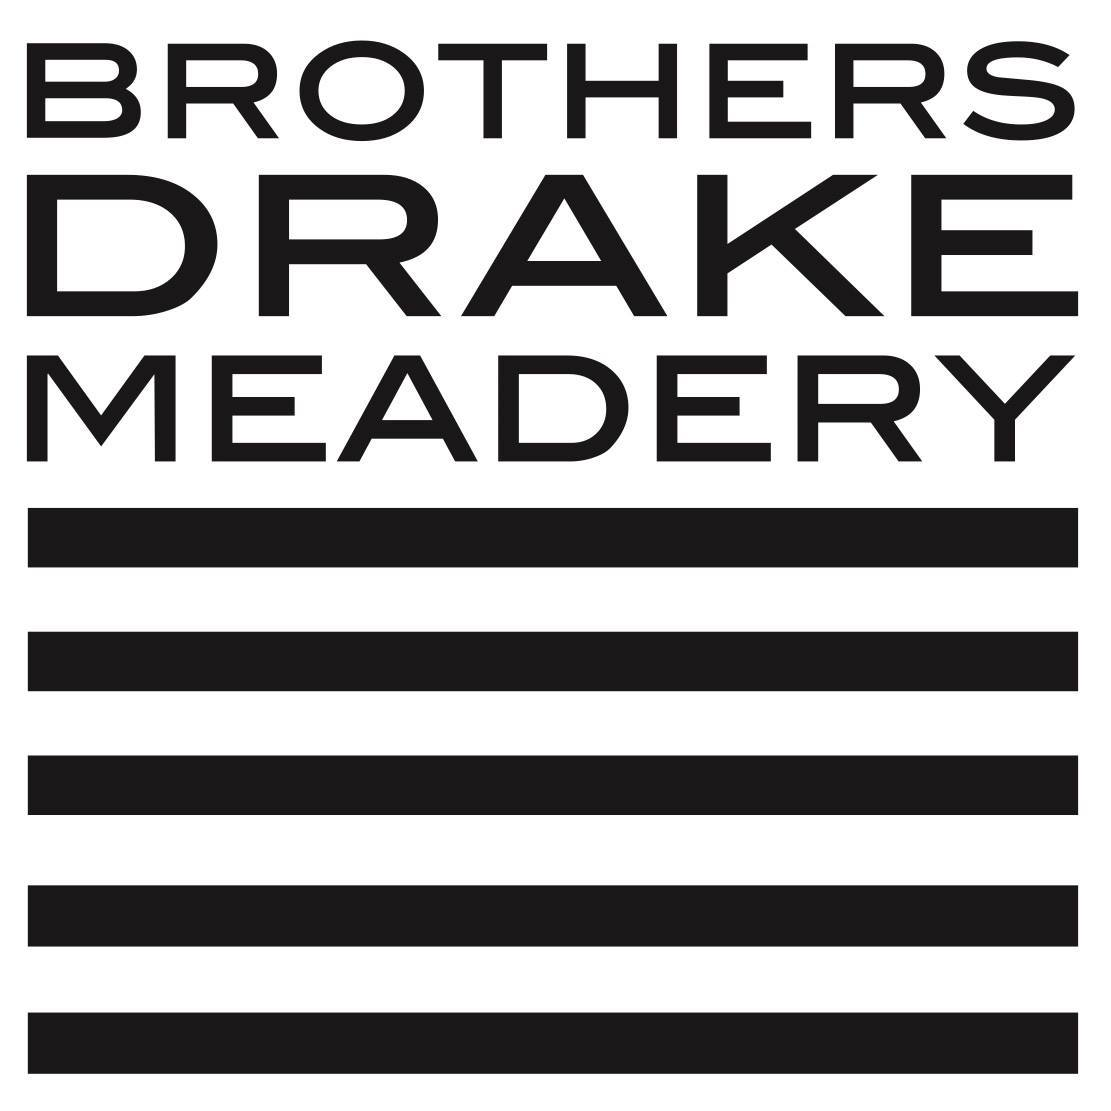 Brother's Drake Meadery